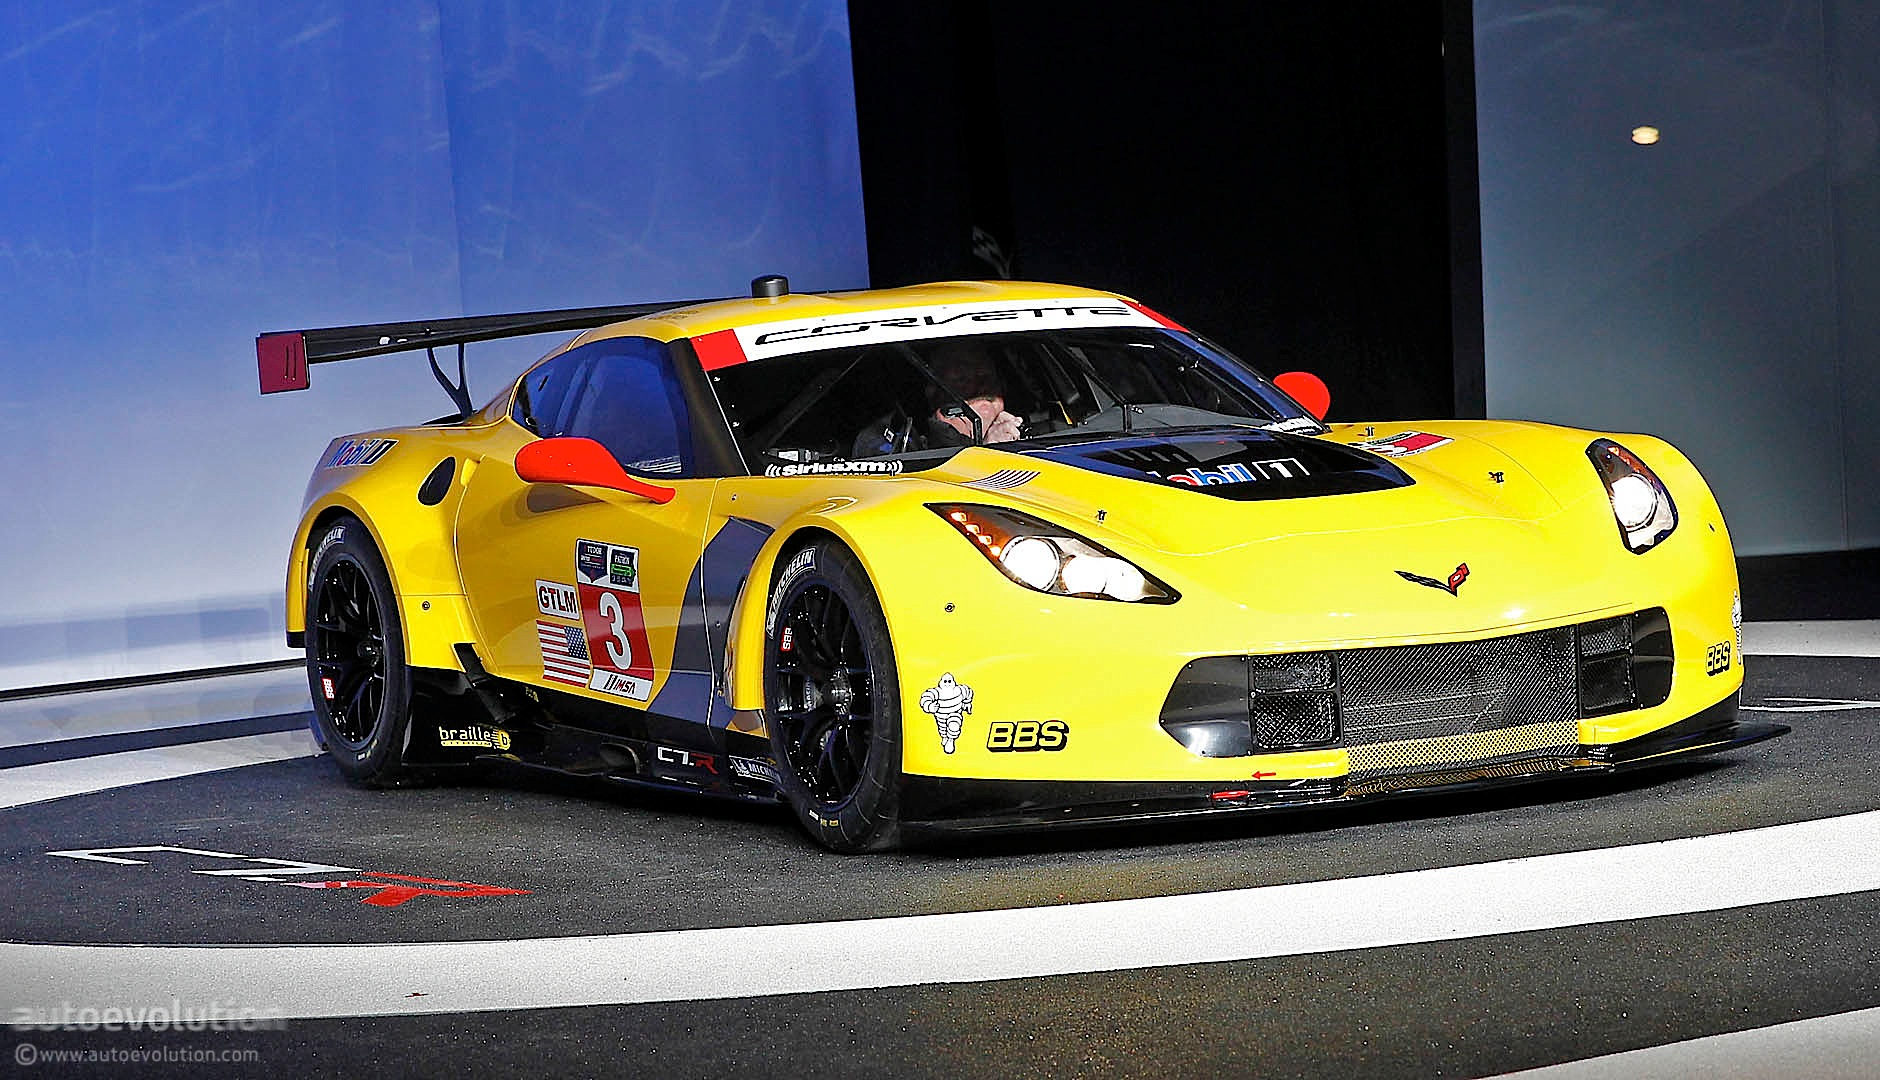 2014 Corvette C7 R Breaks Cover In Detroit Promises More